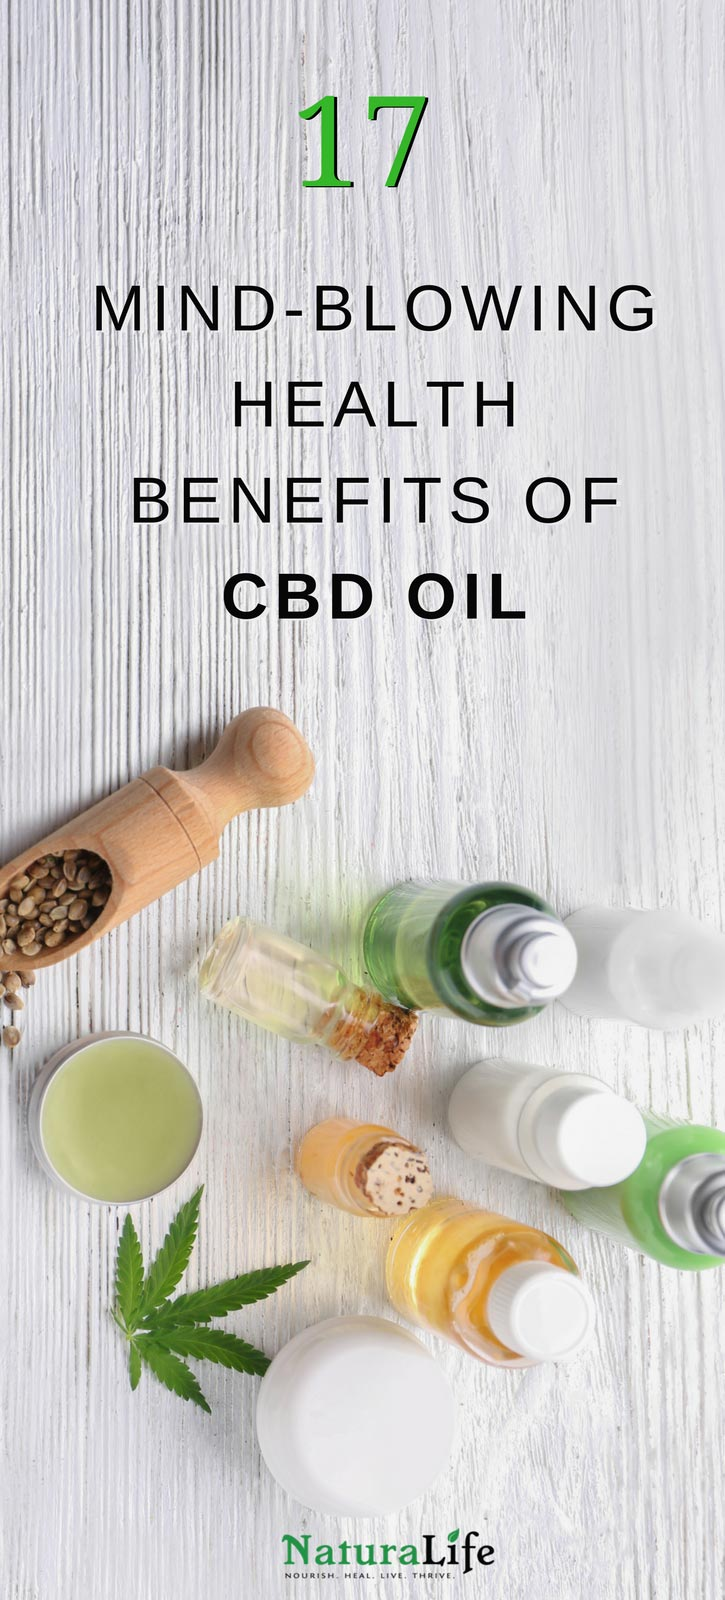 This complete guide to the health benefits of CBD oil will tell you everything you need to know about using it for better sleep, decreased anxiety, natural pain relief, and much more. Cannabidiol (CBD) oil has incredible potential for transforming your life, you just need to know how to do it safely.